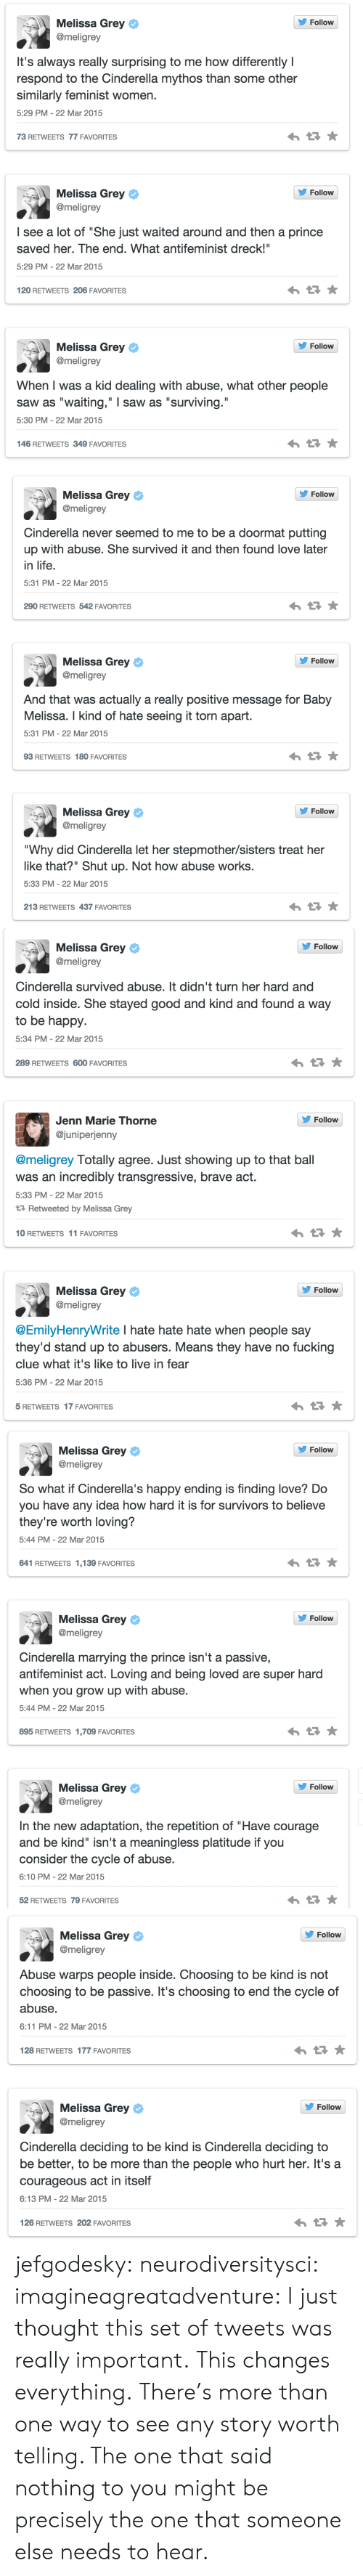 """nothing to you: s, Melissa Grey  Follow  @meligrey  It's always really surprising to me how differently I  respond to the Cinderella mythos than some other  similarly feminist women.  5:29 PM-22 Mar 2015  73 RETWEETS 77 FAVORITES  Follow  Melissa Grey  @meligrey  I see a lot of """"She just waited around and then a prince  saved her. The end. What antifeminist dreck!""""  5:29 PM-22 Mar 2015  120 RETWEETS 206 FAVORITES  s, Melissa Grey  Follow  @meligrey  When I was a kid dealing with abuse, what other people  saw as """"waiting,"""" I saw as """"surviving.""""  5:30 PM- 22 Mar 2015  146 RETWEETS 349 FAVORITES   Melissa Grey ф  @meligrey  ' Follow  Cinderella never seemed to me to be a doormat putting  up with abuse. She survived it and then found love later  in life  5:31 PM-22 Mar 2015  290 RETWEETS 542 FAVORITES  Follow  Melissa Grey ф  @meligrey  And that was actually a really positive message for Baby  Melissa. I kind of hate seeing it torn apart.  5:31 PM-22 Mar 2015  93 RETWEETS 180 FAVORITES  Follow  Melissa Grey ф  @meligrey  """"Why did Cinderella let her stepmother/sisters treat her  like that?"""" Shut up. Not how abuse works.  5:33 PM-22 Mar 2015  213 RETWEETS 437 FAVORITES   s, Melissa Grey  @meligrey  Follow  Cinderella survived abuse. It didn't turn her hard and  cold inside. She stayed good and kind and found a way  to be happy  5:34 PM- 22 Mar 2015  289 RETWEETS 600 FAVORITES  Follovw  Jenn Marie Thorne  @juniperjenny  @meligrey Totally agree. Just showing up to that ball  was an incredibly transgressive, brave act.  5:33 PM- 22 Mar 2015  Retweeted by Melissa Grey  10 RETWEETS 11 FAVORITES  s, Melissa Grey  Follow  @meligrey  @EmilyHenryWrite I hate hate hate when people say  they'd stand up to abusers. Means they have no fucking  clue what it's like to live in fear  5:36 PM- 22 Mar 2015  5 RETWEETS 17 FAVORITES   Follow  Melissa Grey ф  @meligrey  So what if Cinderella's happy ending is finding love? Do  you have any idea how hard it is for survivors to believe  they're """